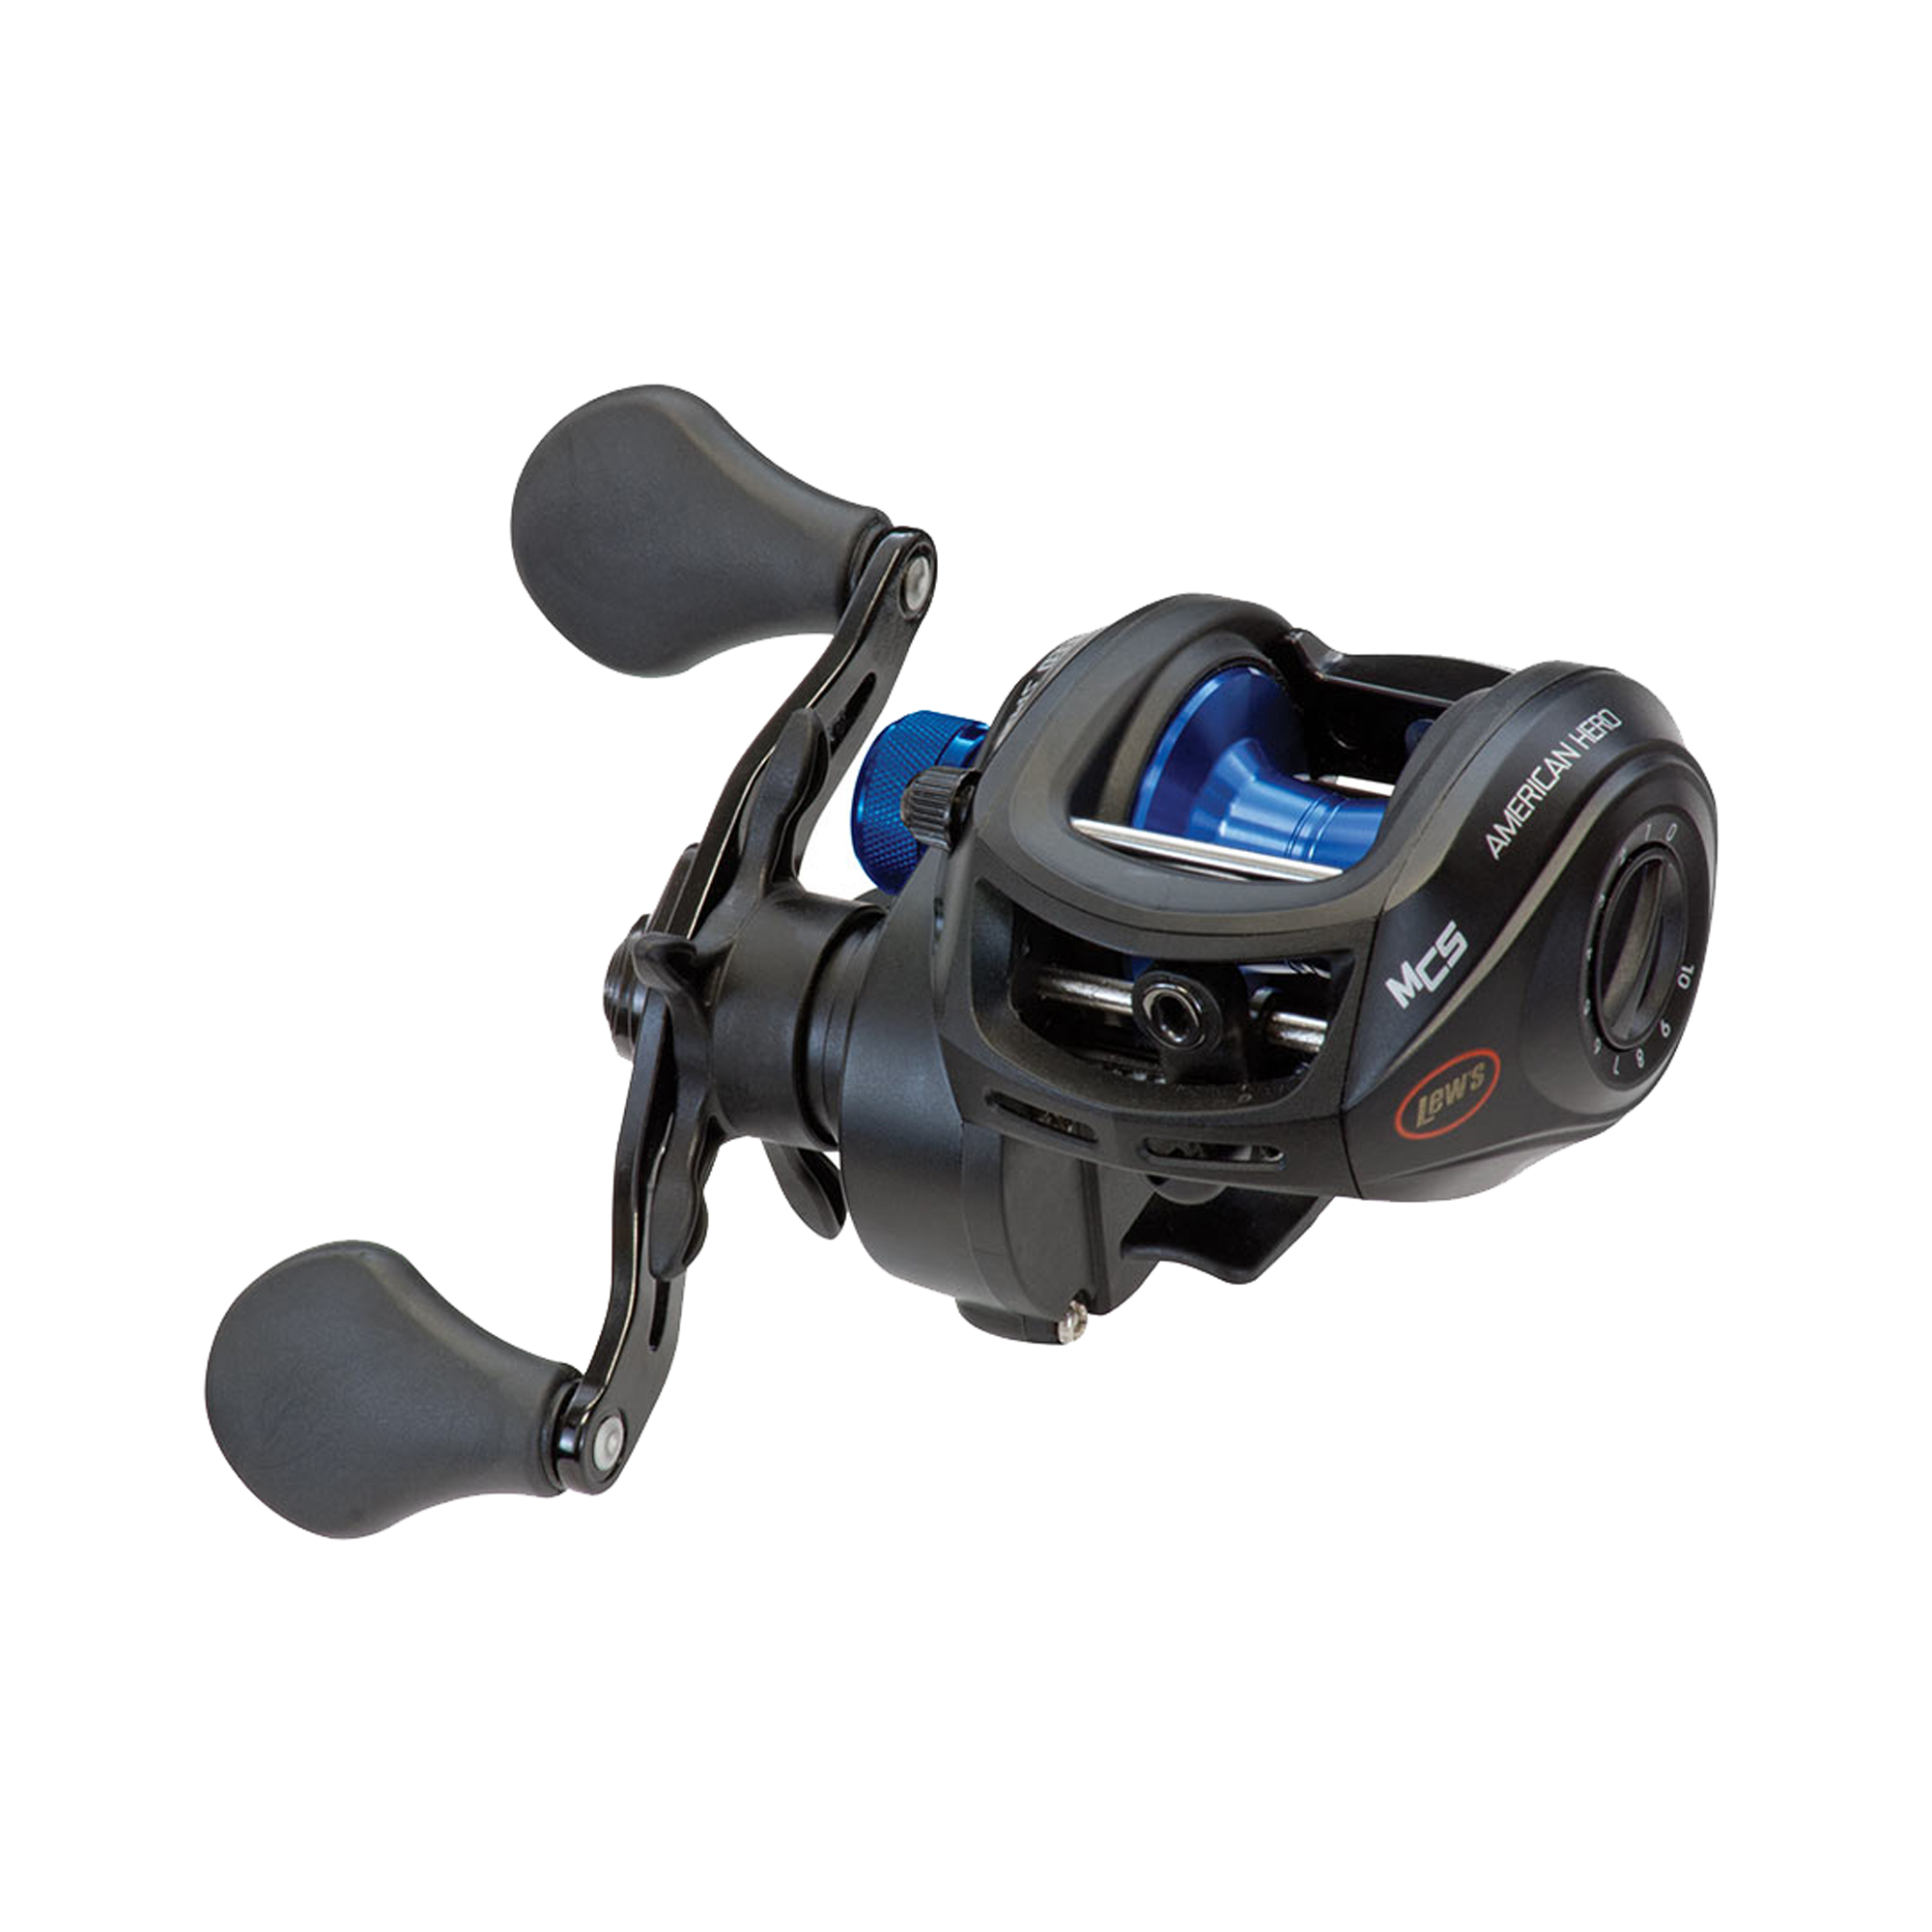 Lews Fishing AH1H, American Heroes Speed Spool Baitcast Reel Box by Lews Fishing